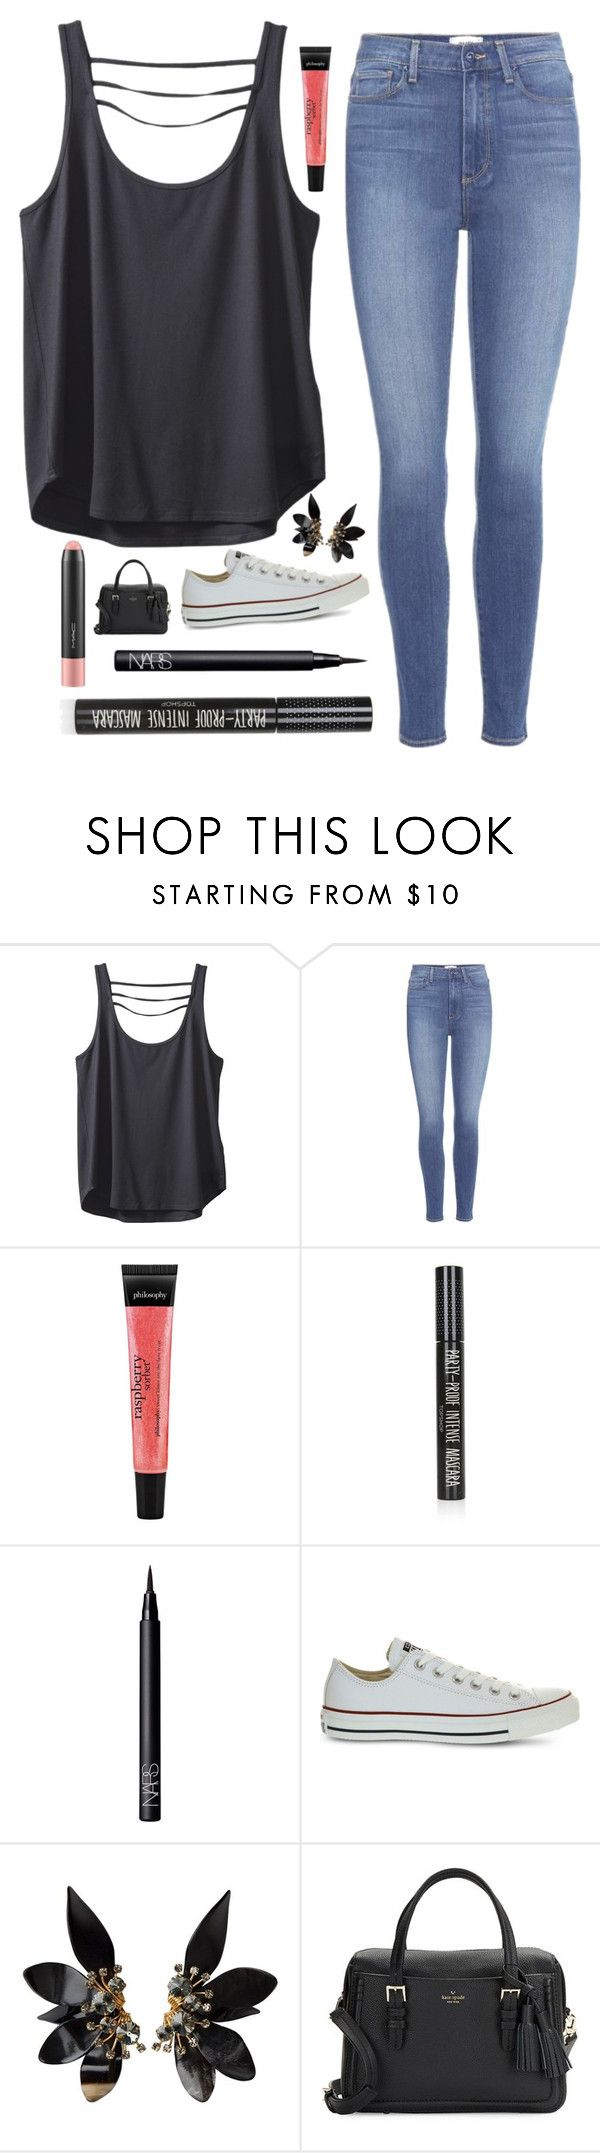 """""""Glossy """" by barbiecar ❤ liked on Polyvore featuring Kavu, Paige Denim, philosophy, Topshop, NARS Cosmetics, Converse, Marni, Kate Spade and MAC Cosmetics"""